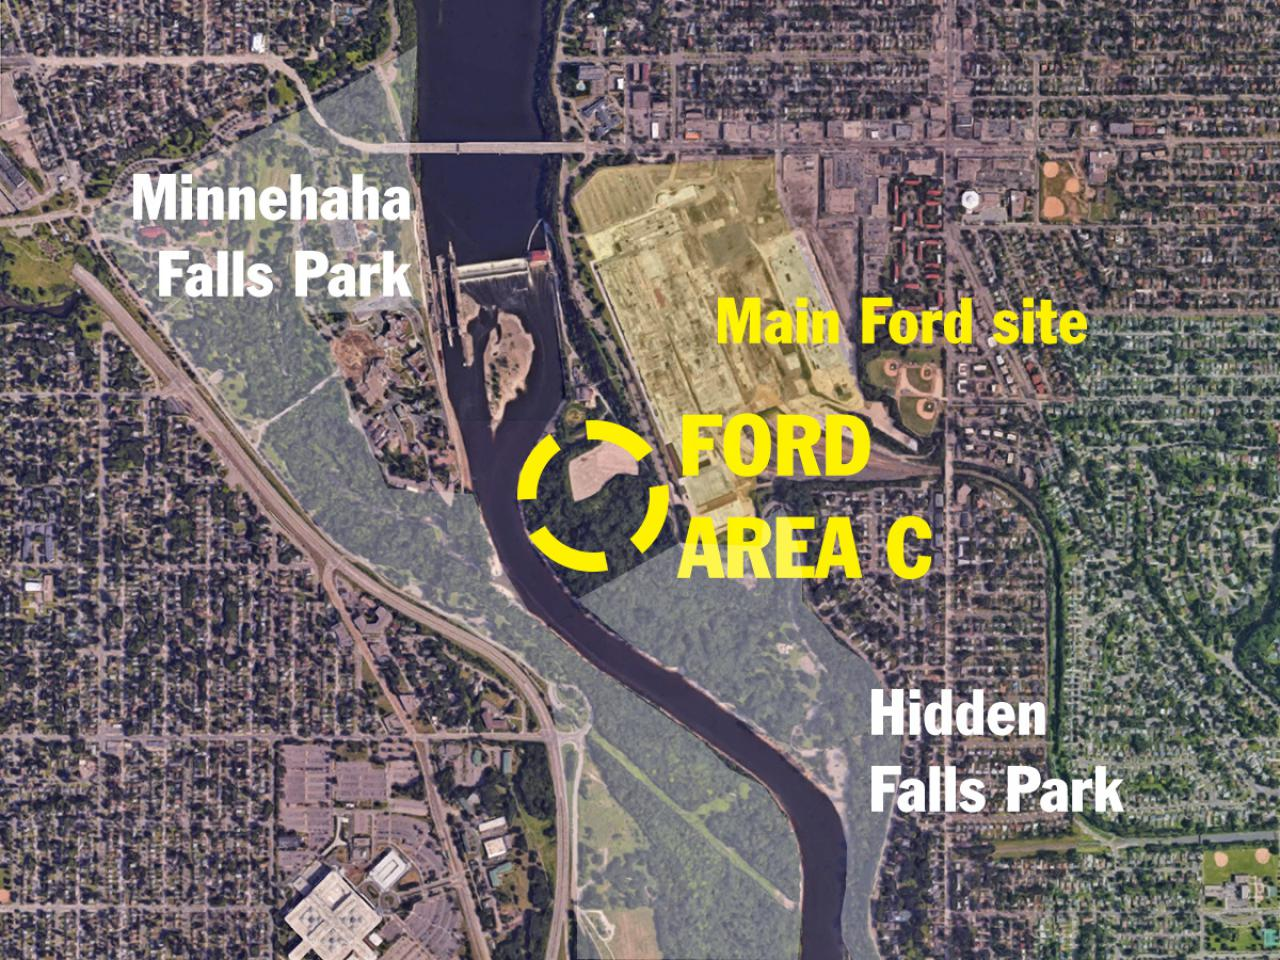 Ford Area C is just north of Hidden Falls ans across from Minnehaha Falls parks.